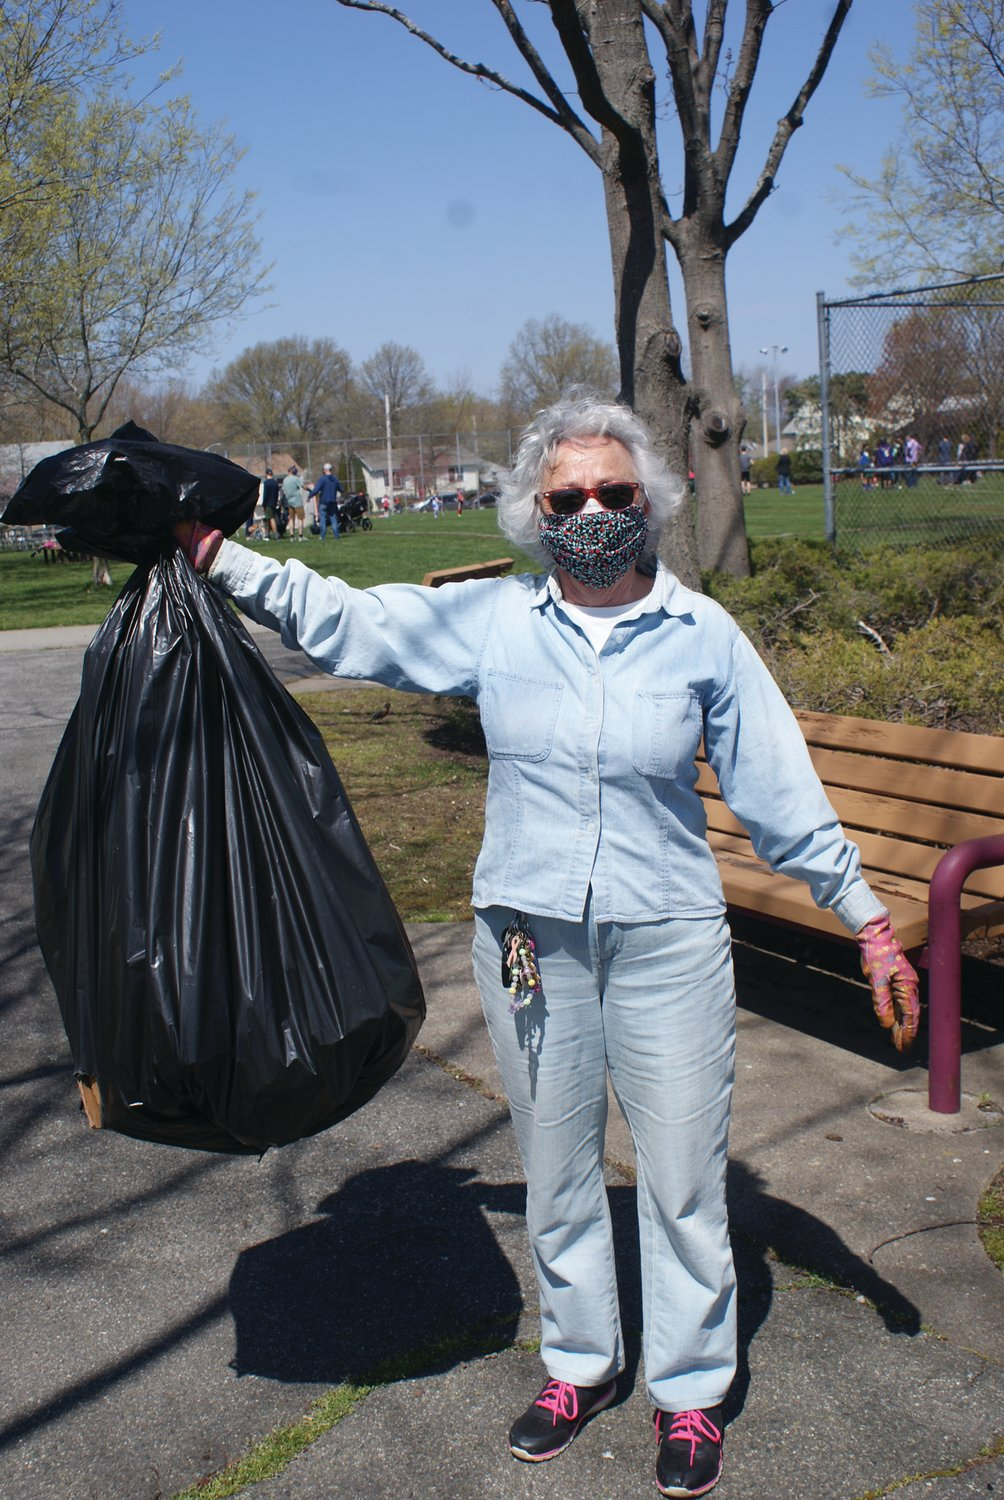 COMMUNITY SPIRIT: Claire Taraborelli, a young resident of Cranston, volunteered her time during the Doric Park cleanup.